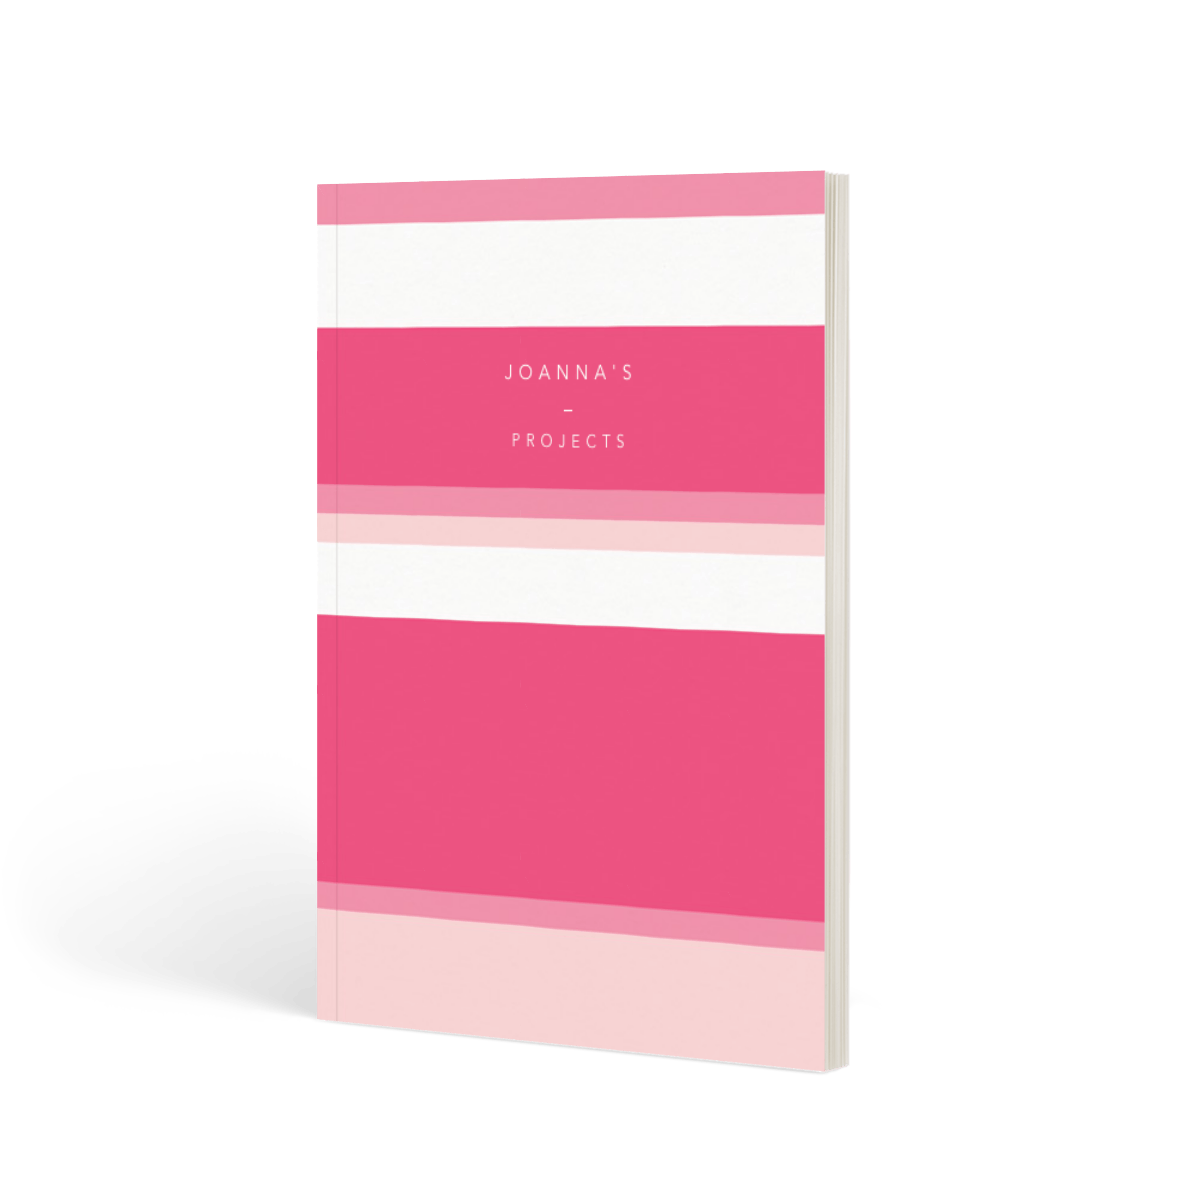 Https%3a%2f%2fwww.papier.com%2fproduct image%2f37812%2f6%2fpink colour blocks 9527 front 1530608570.png?ixlib=rb 1.1